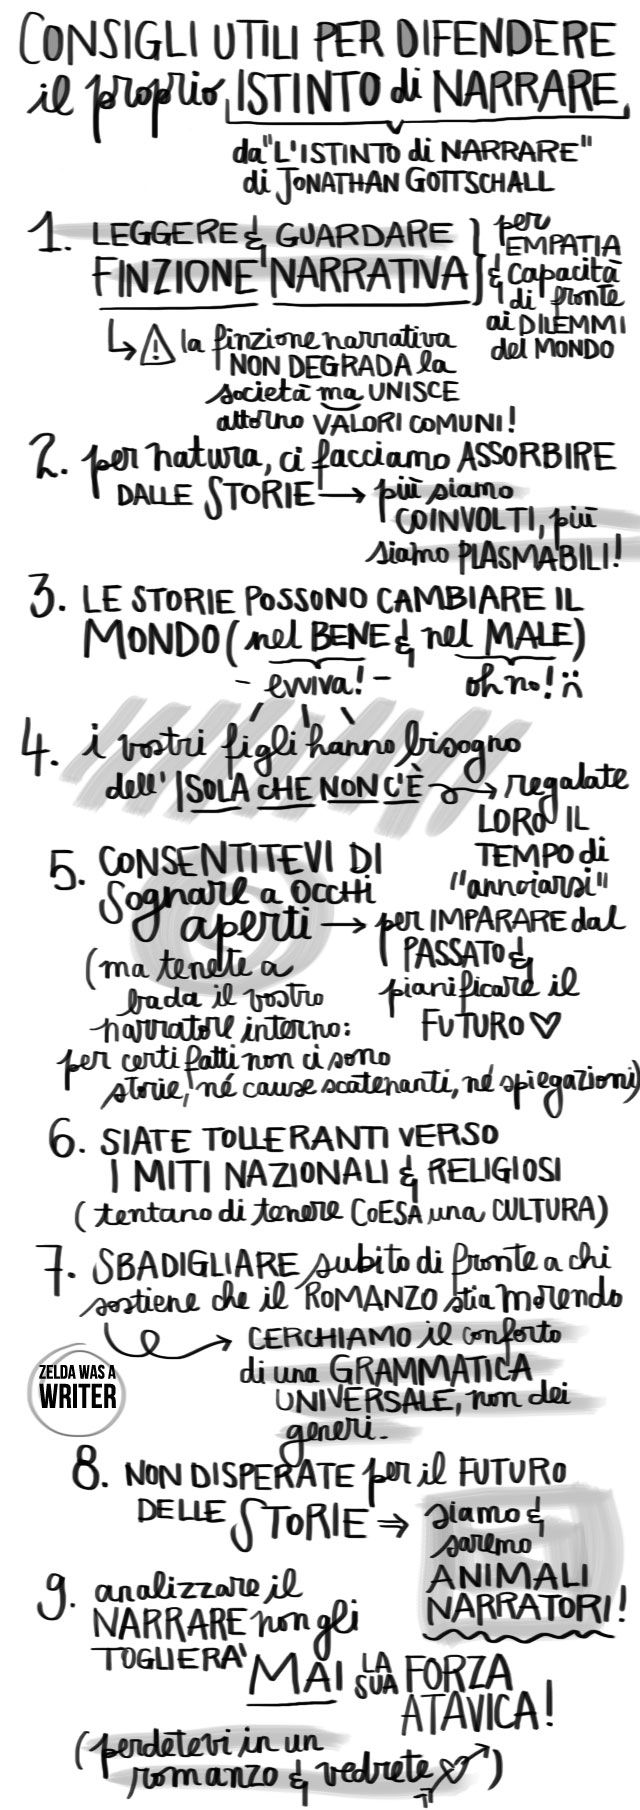 L'Istinto di Narrare | Zelda was a writer